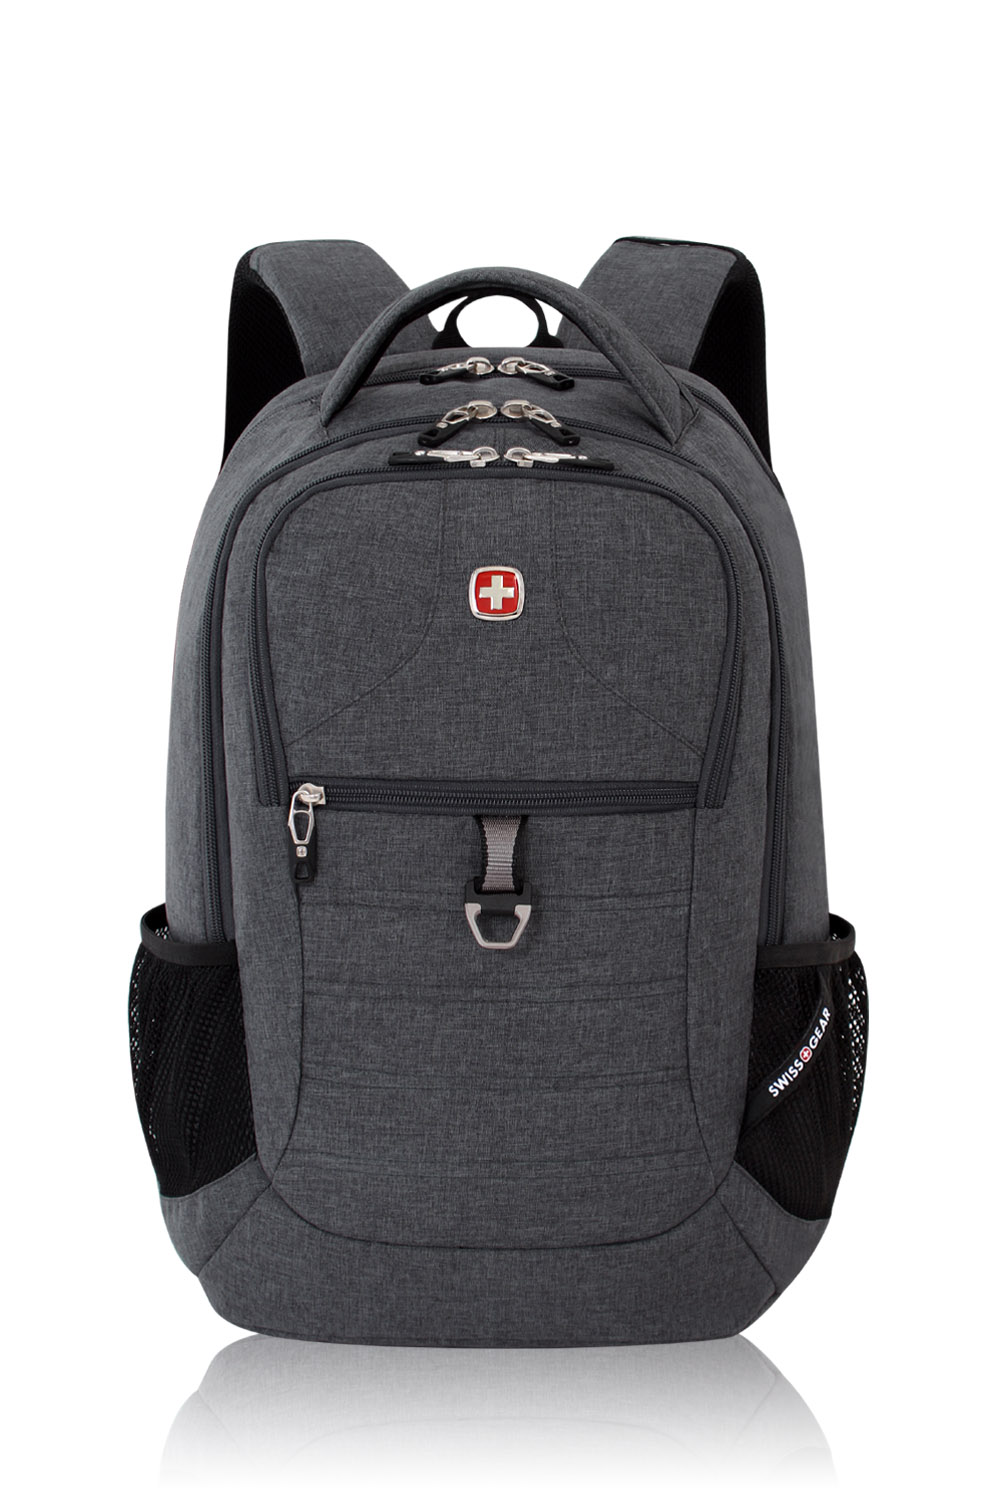 SWISSGEAR 5888 Scansmart Backpack